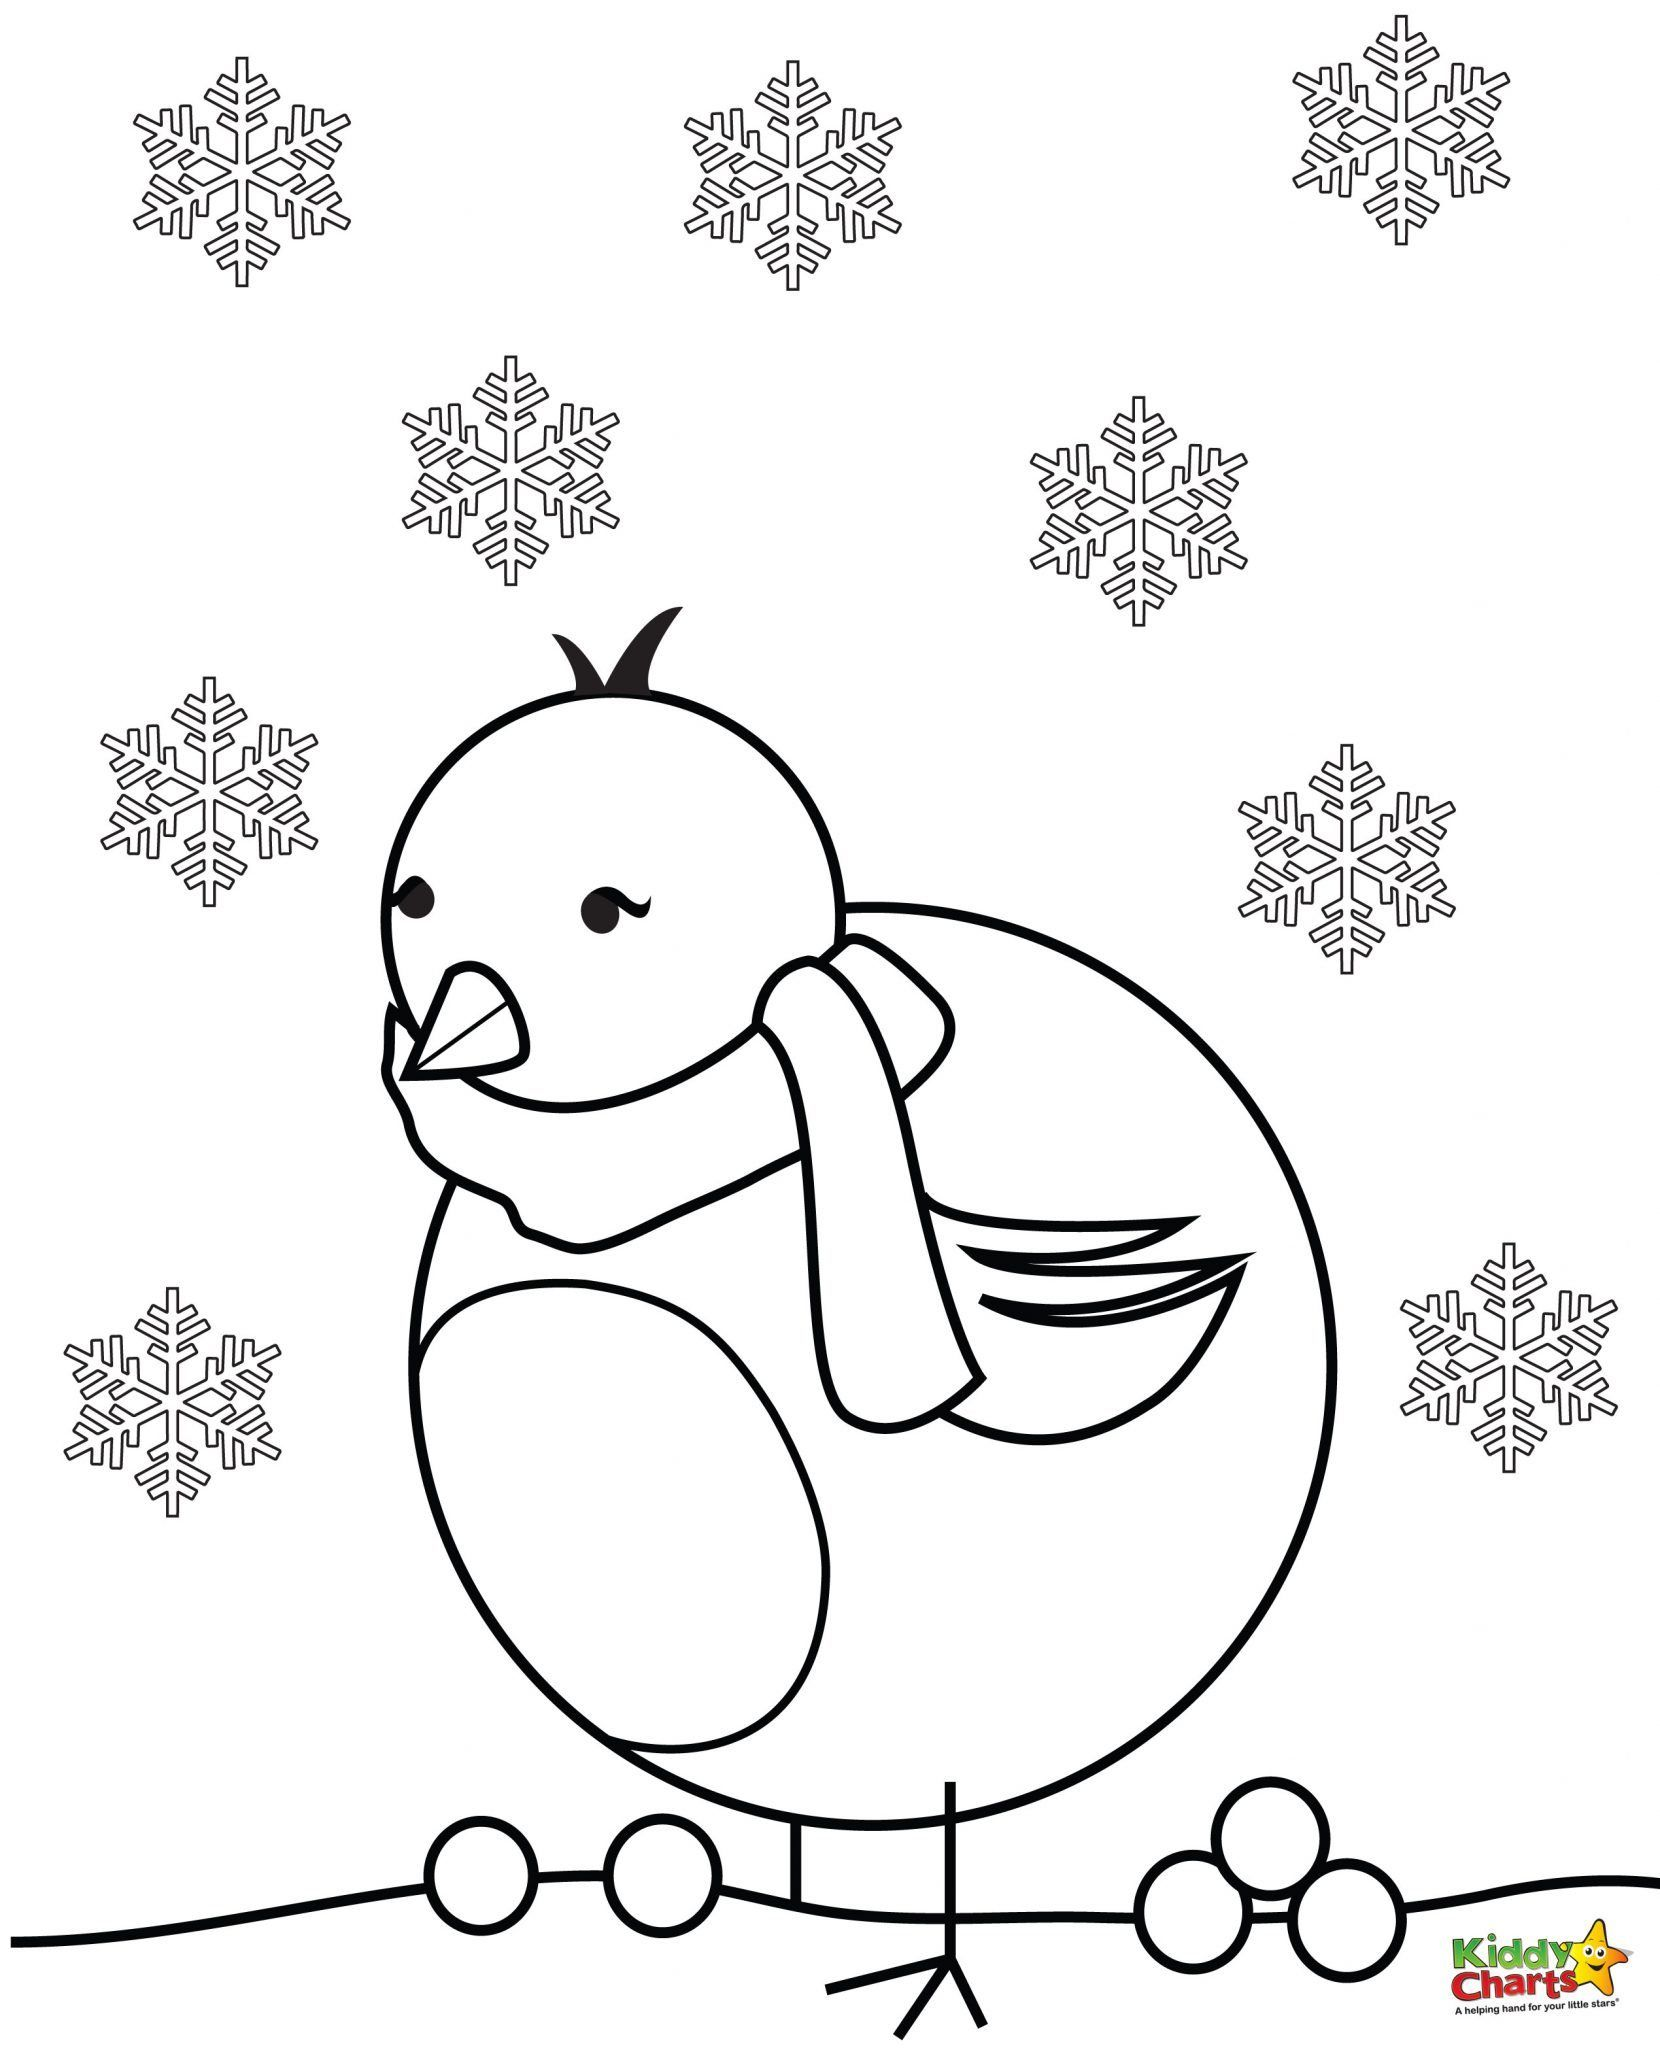 Colouring in reward charts - Robin Coloring Pages